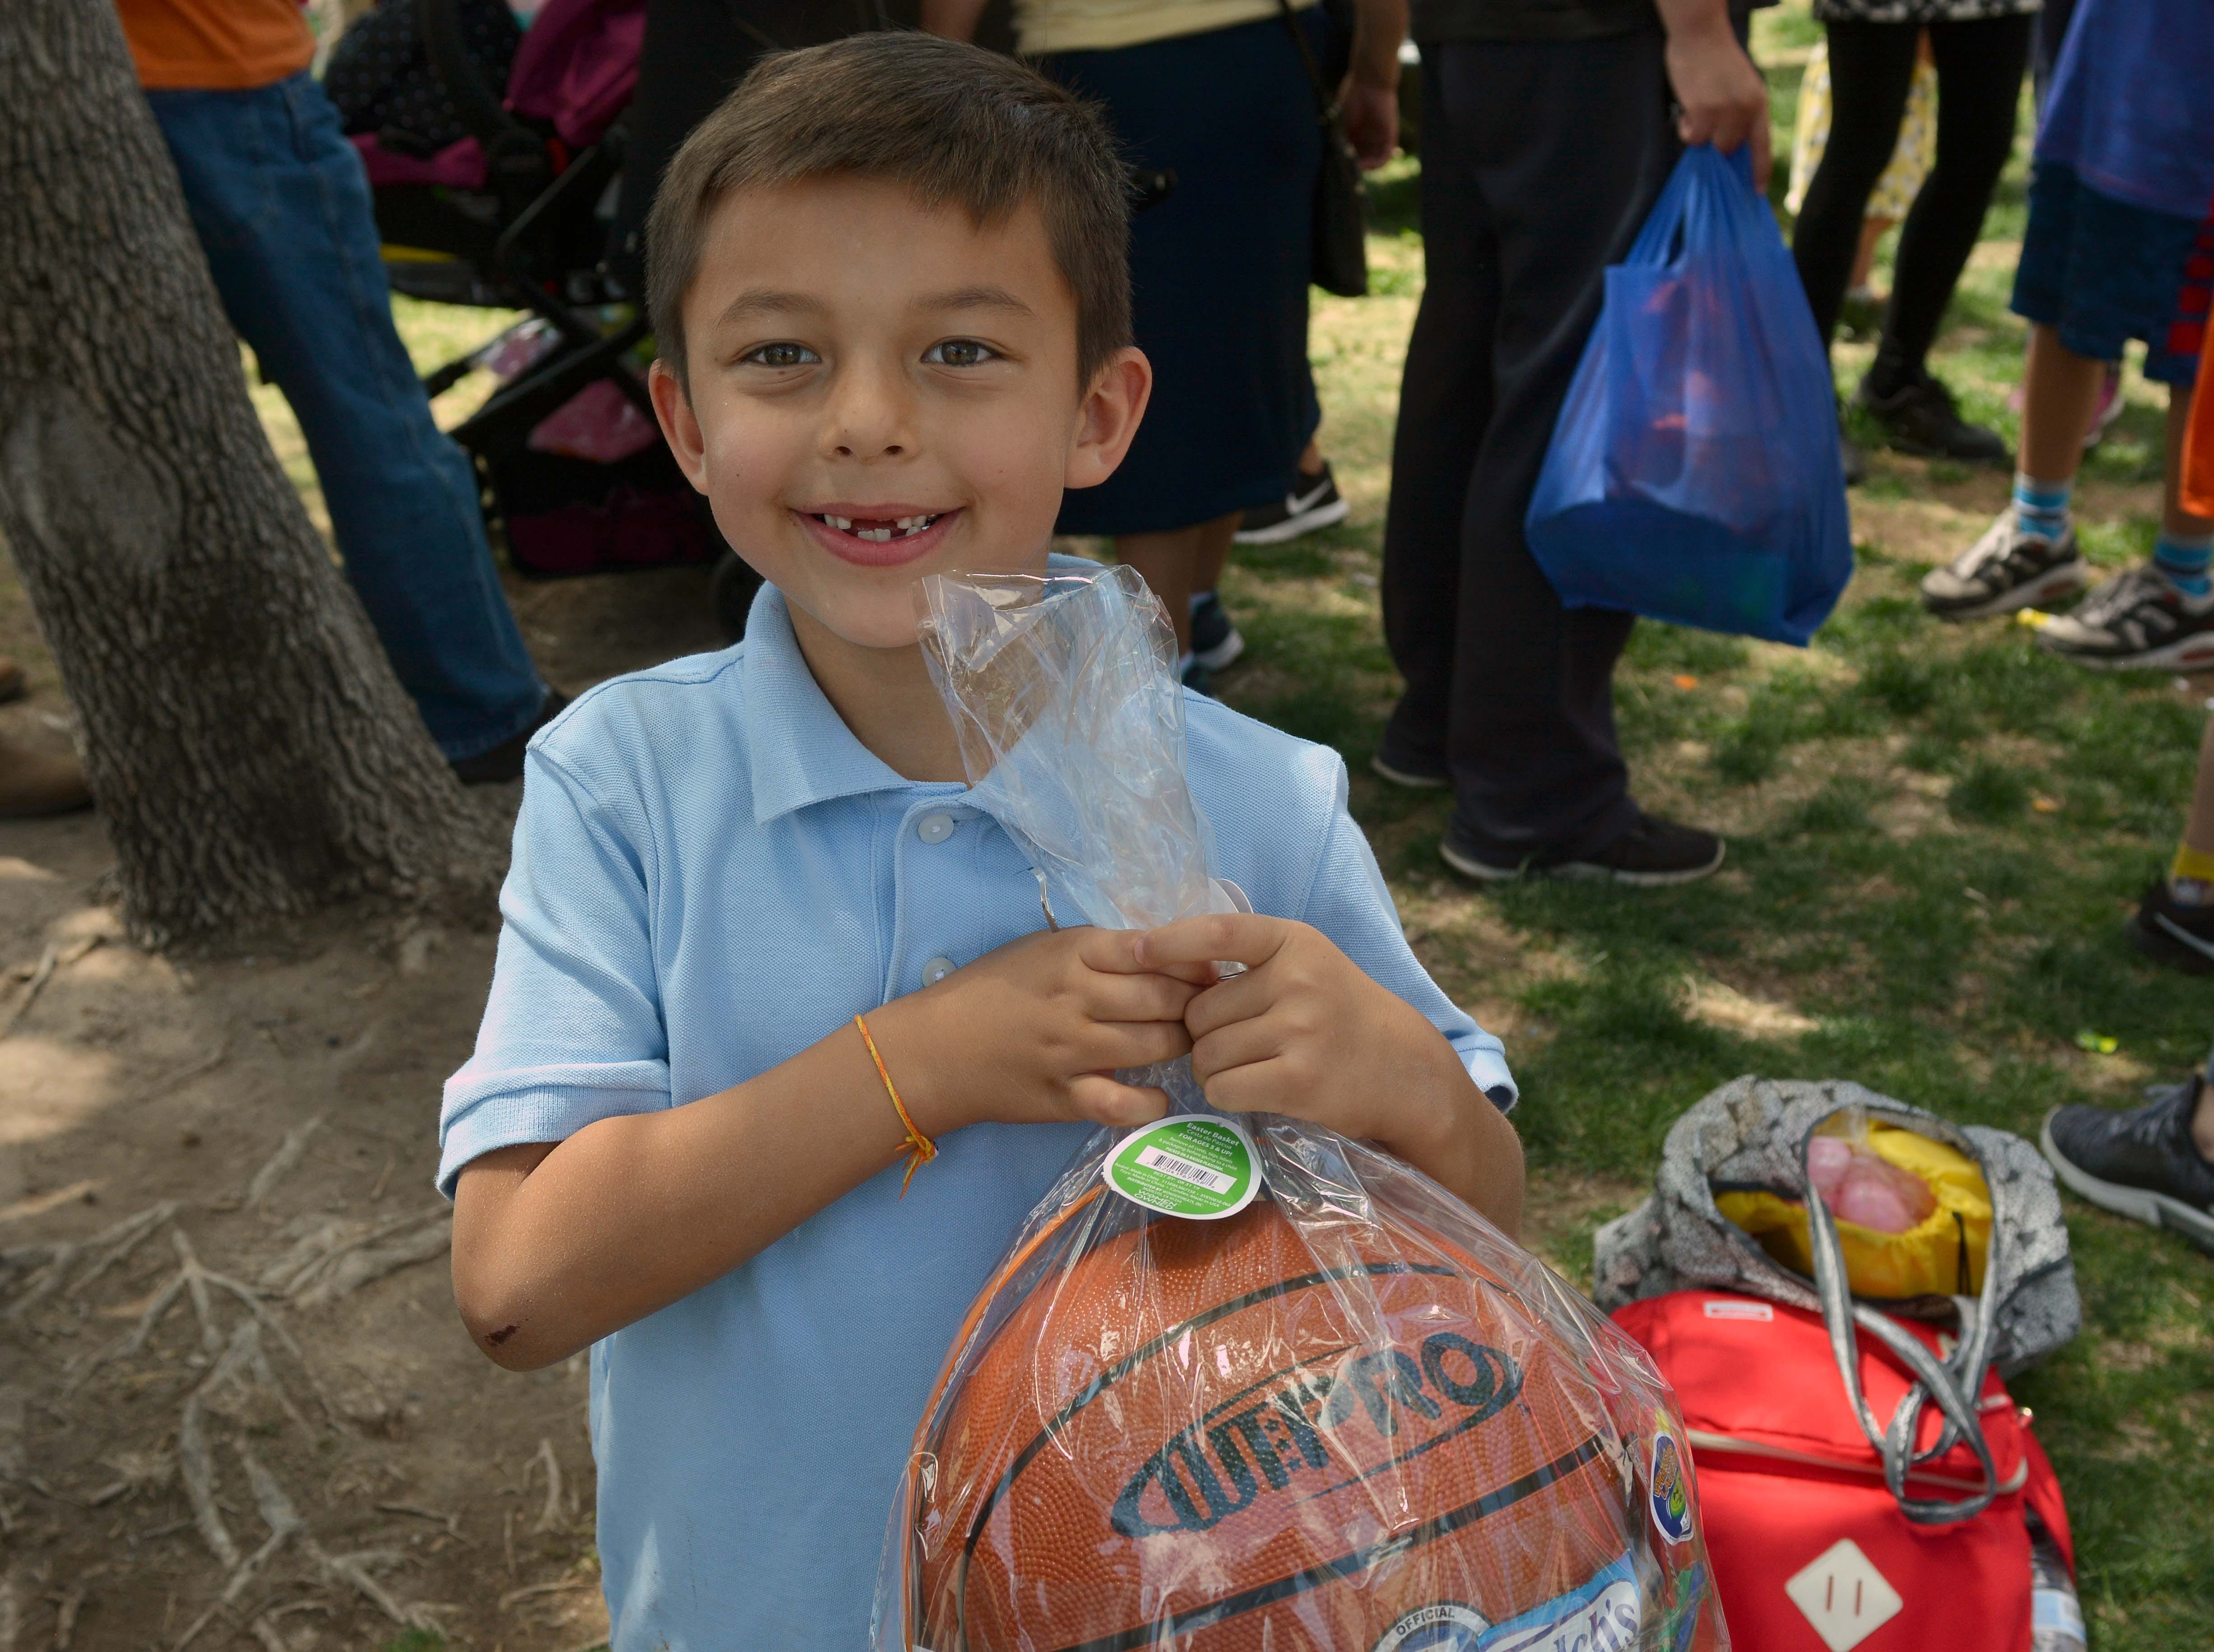 Xzavier Soliz shows off a basket that he won in a raffle during SpringFest at Young Park on Saturday, April 20, 2019.